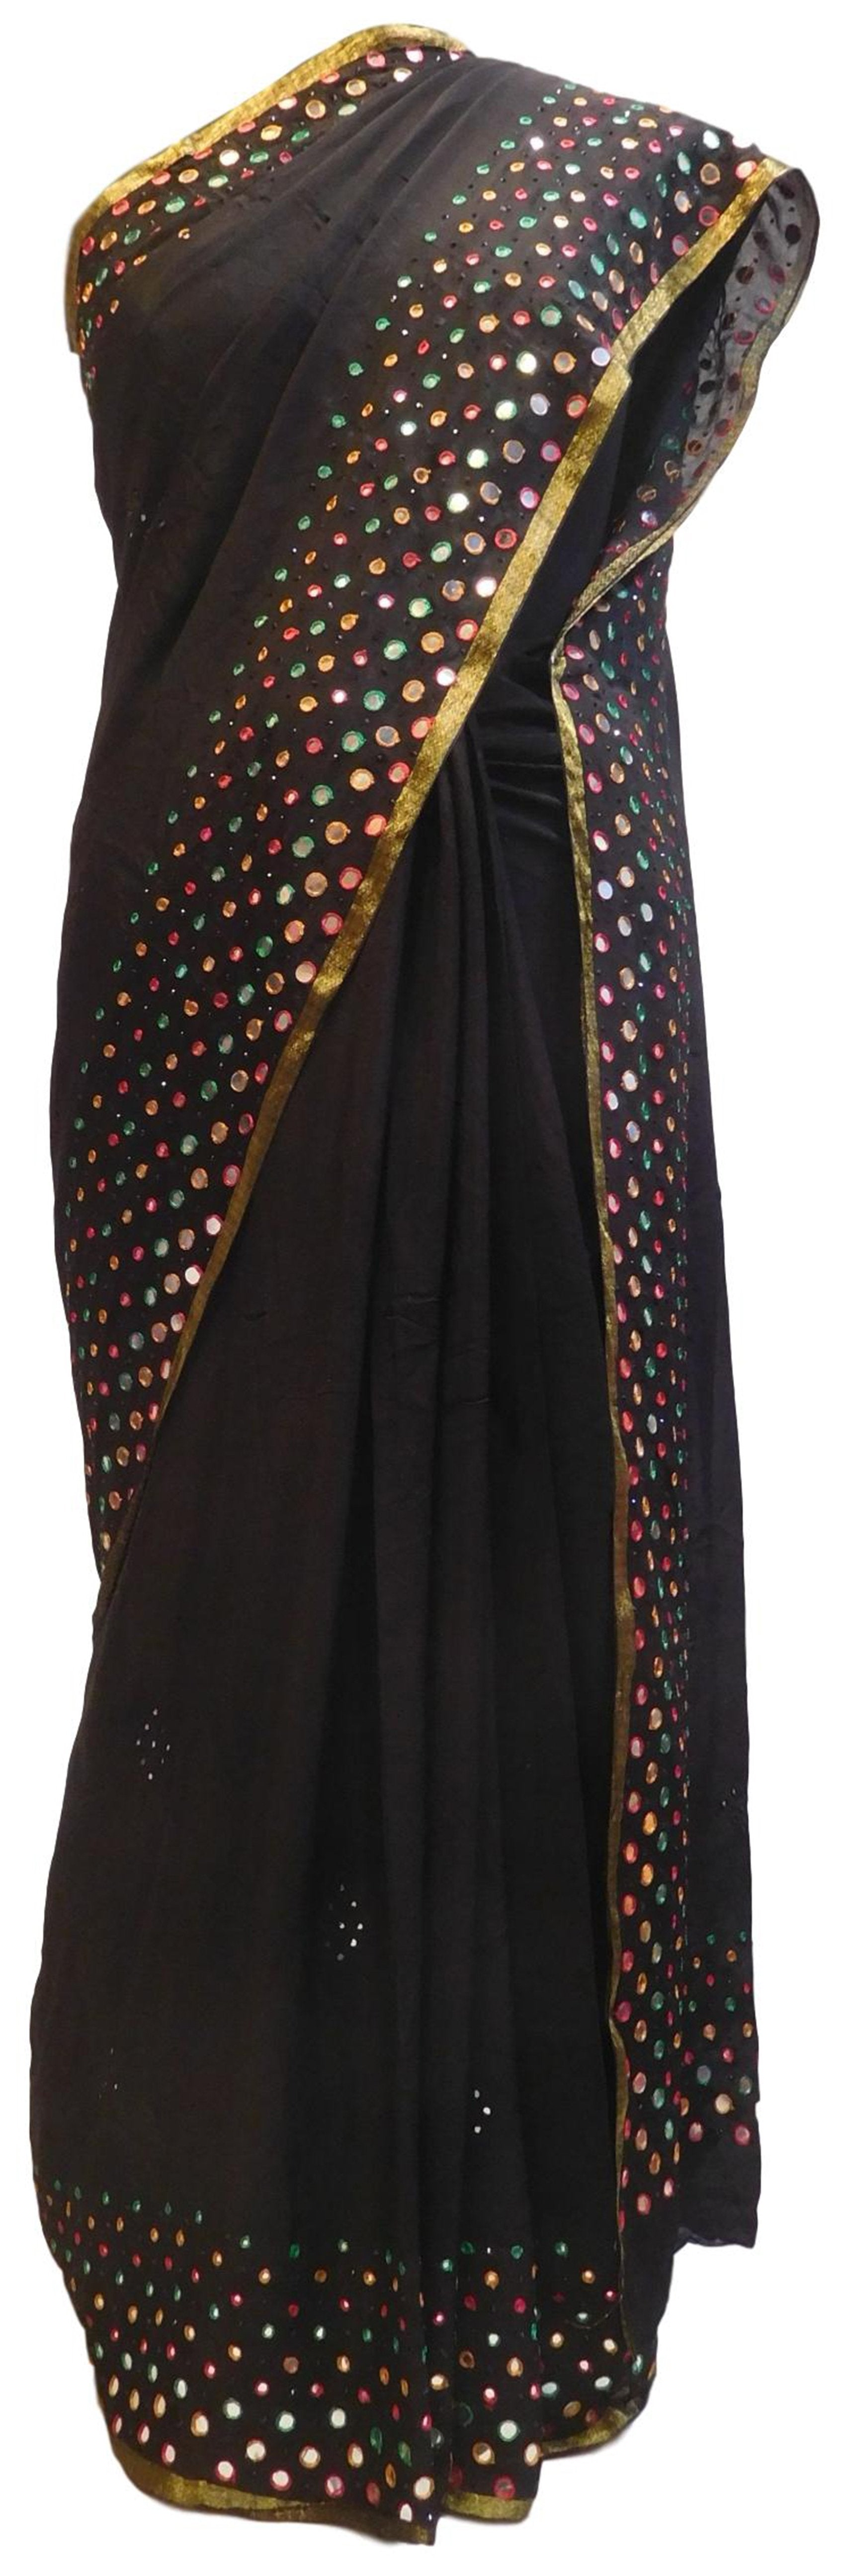 Black Designer Bridal PartyWear Crepe Thread Mirror Stone Work Wedding Saree Sari E039